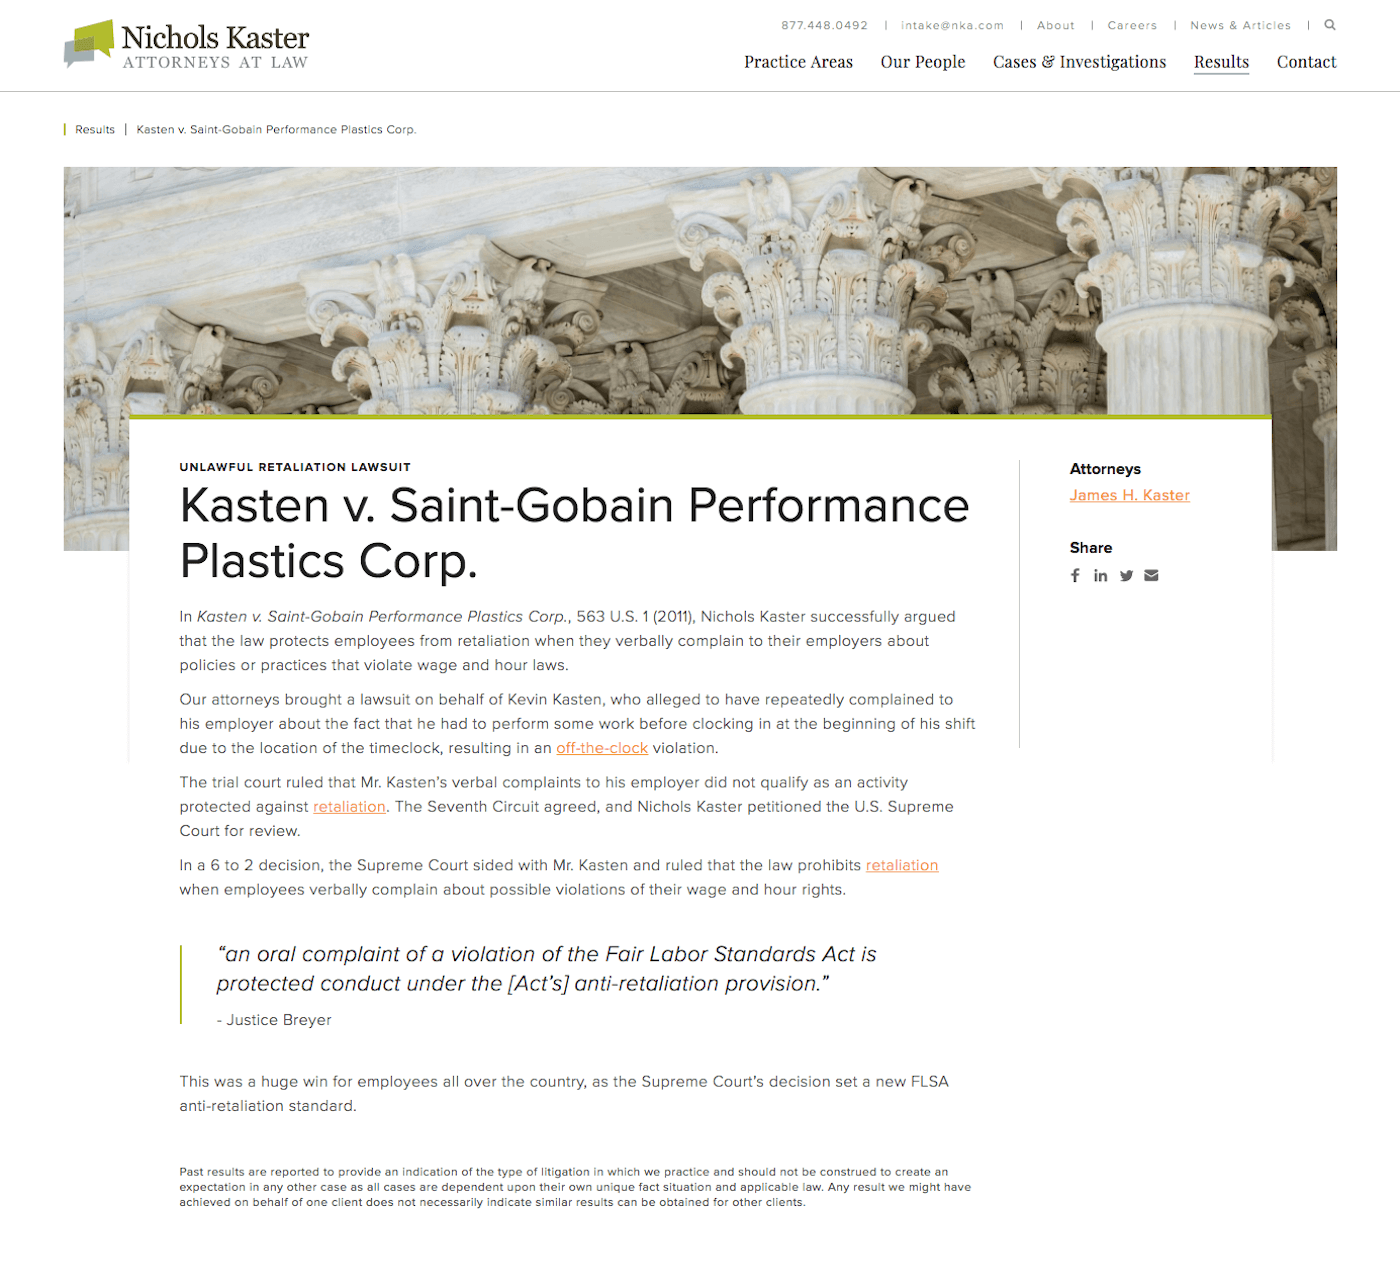 Nichols Kaster Web Design: Additional Featured Case